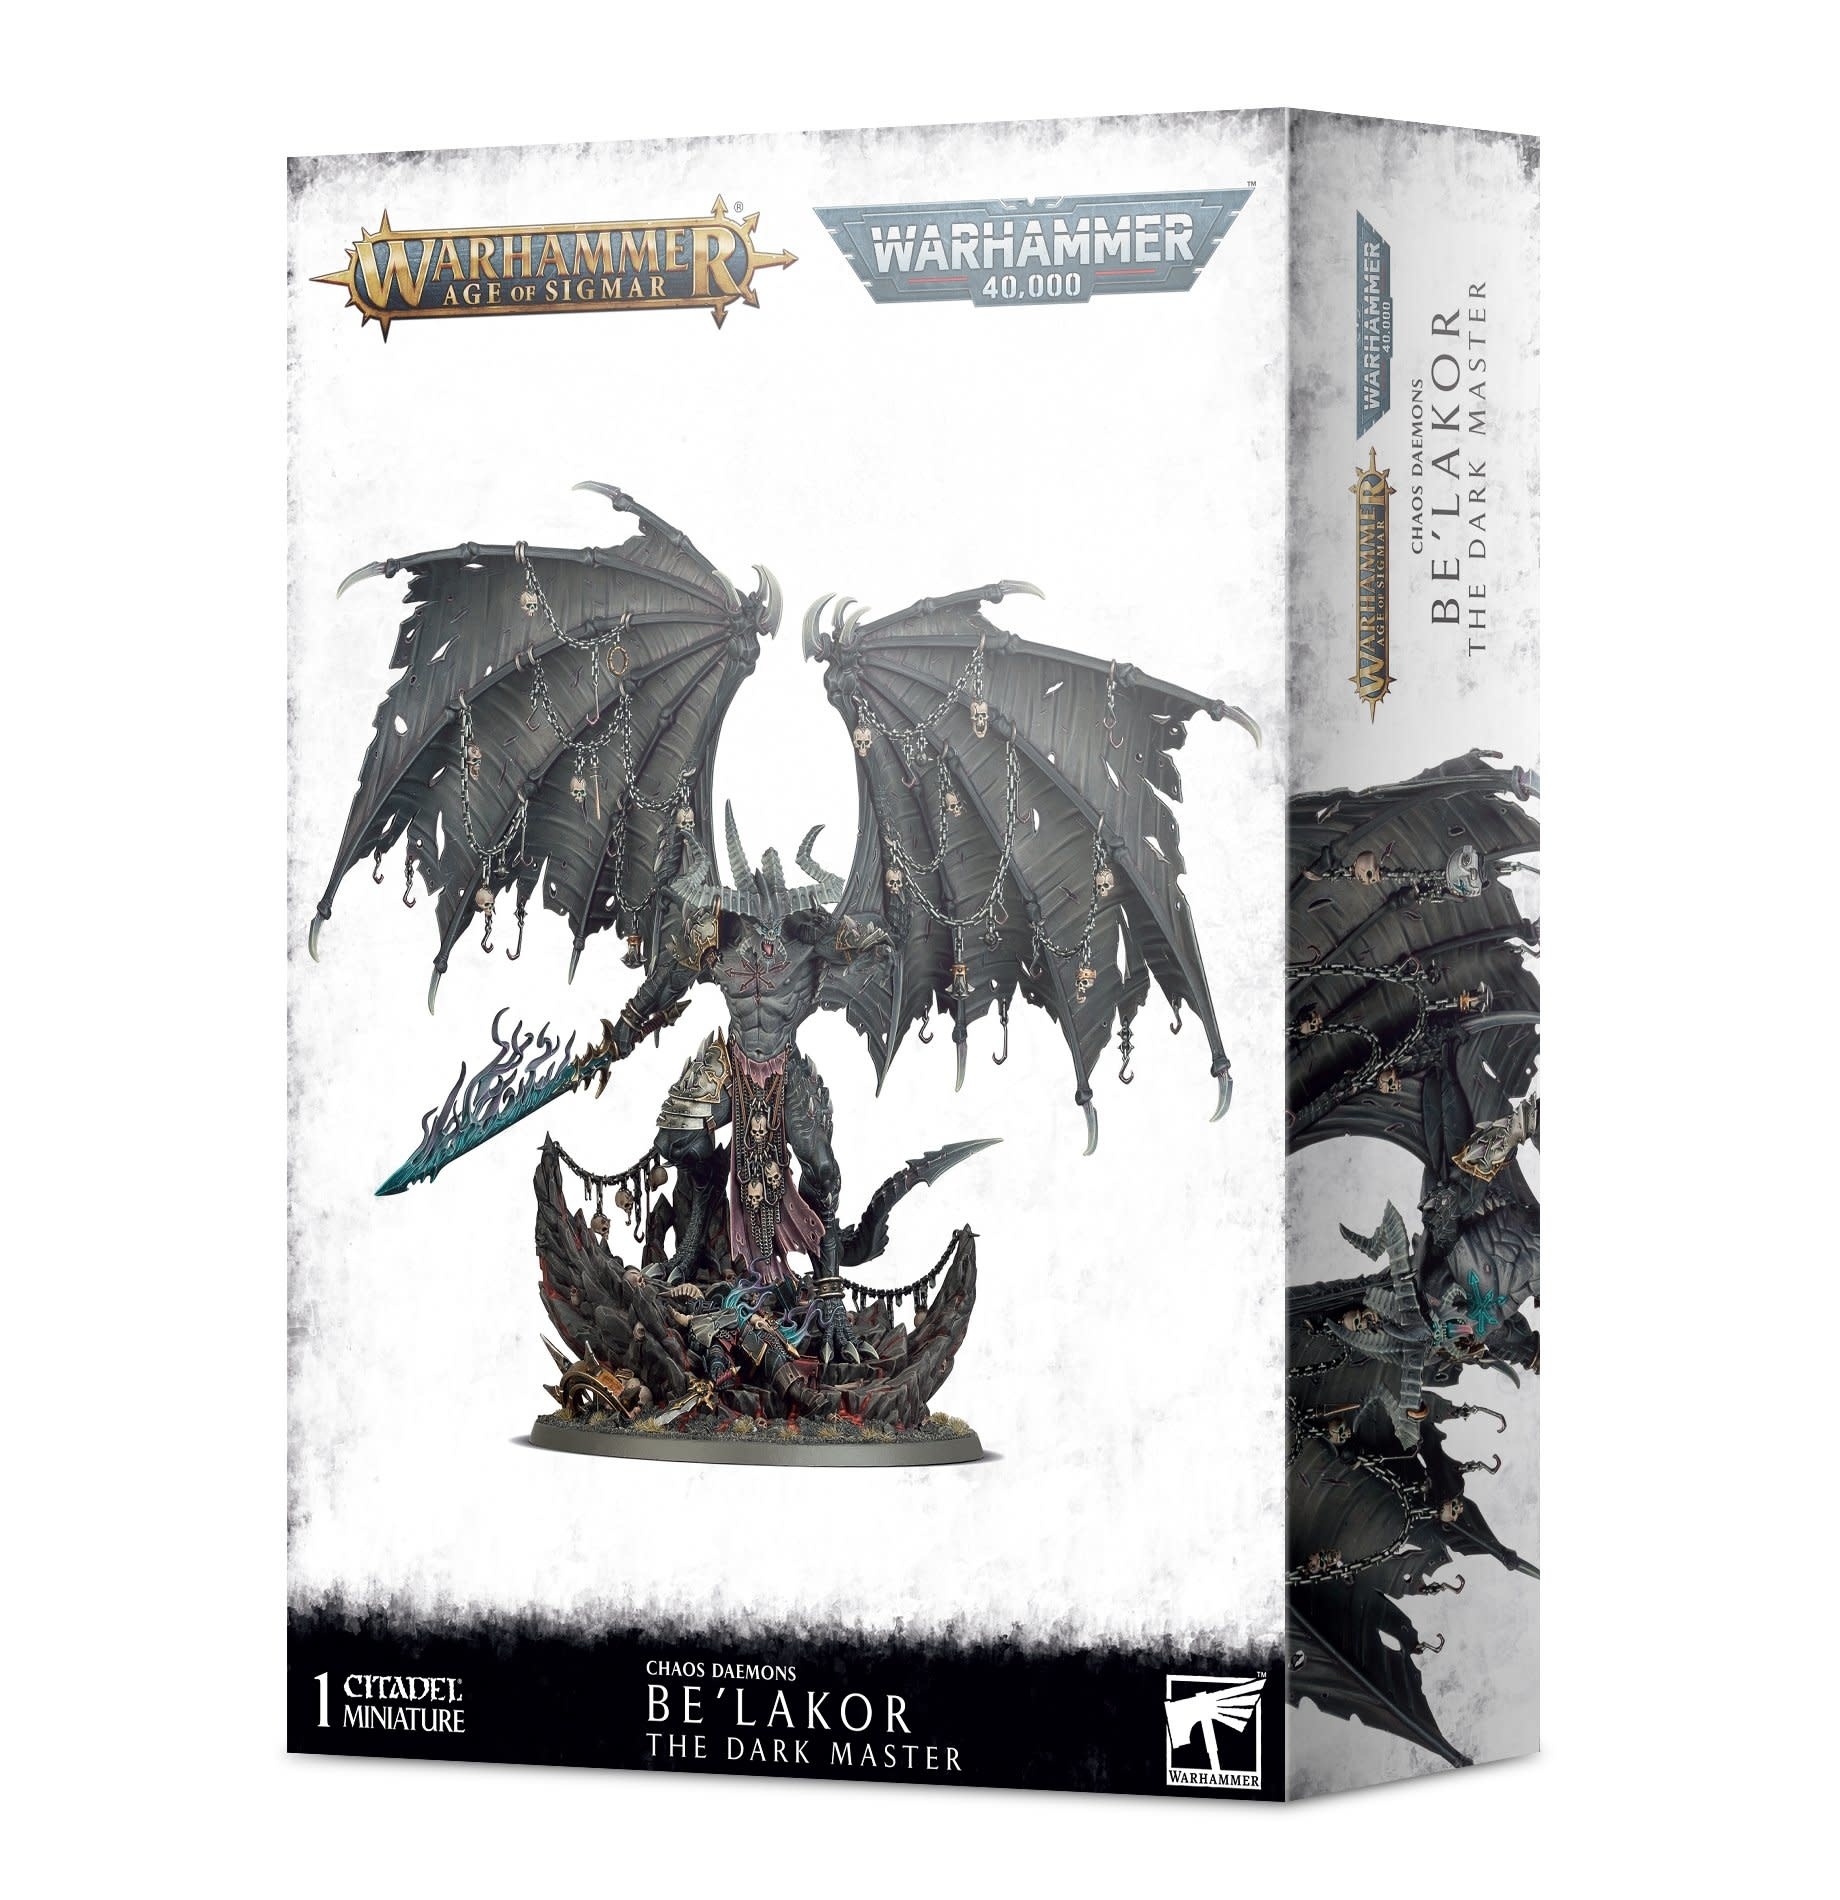 Be'lakor the Master back in stock!